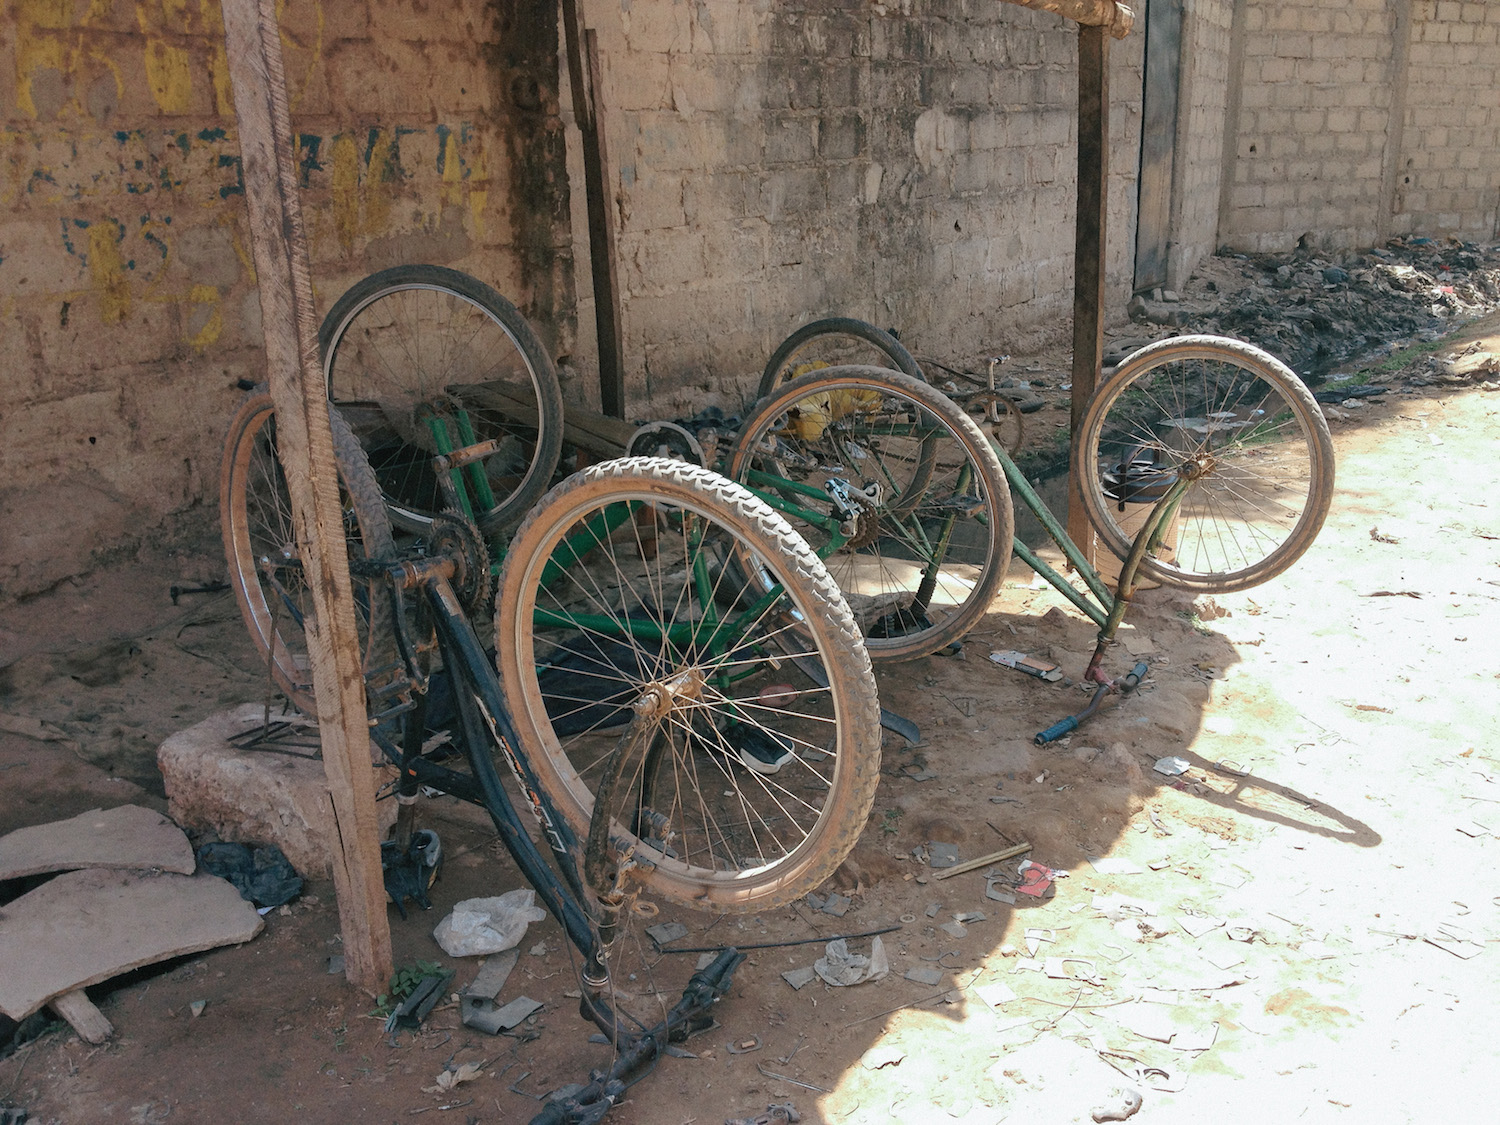 Damaged bikes on a back street in The Gambia